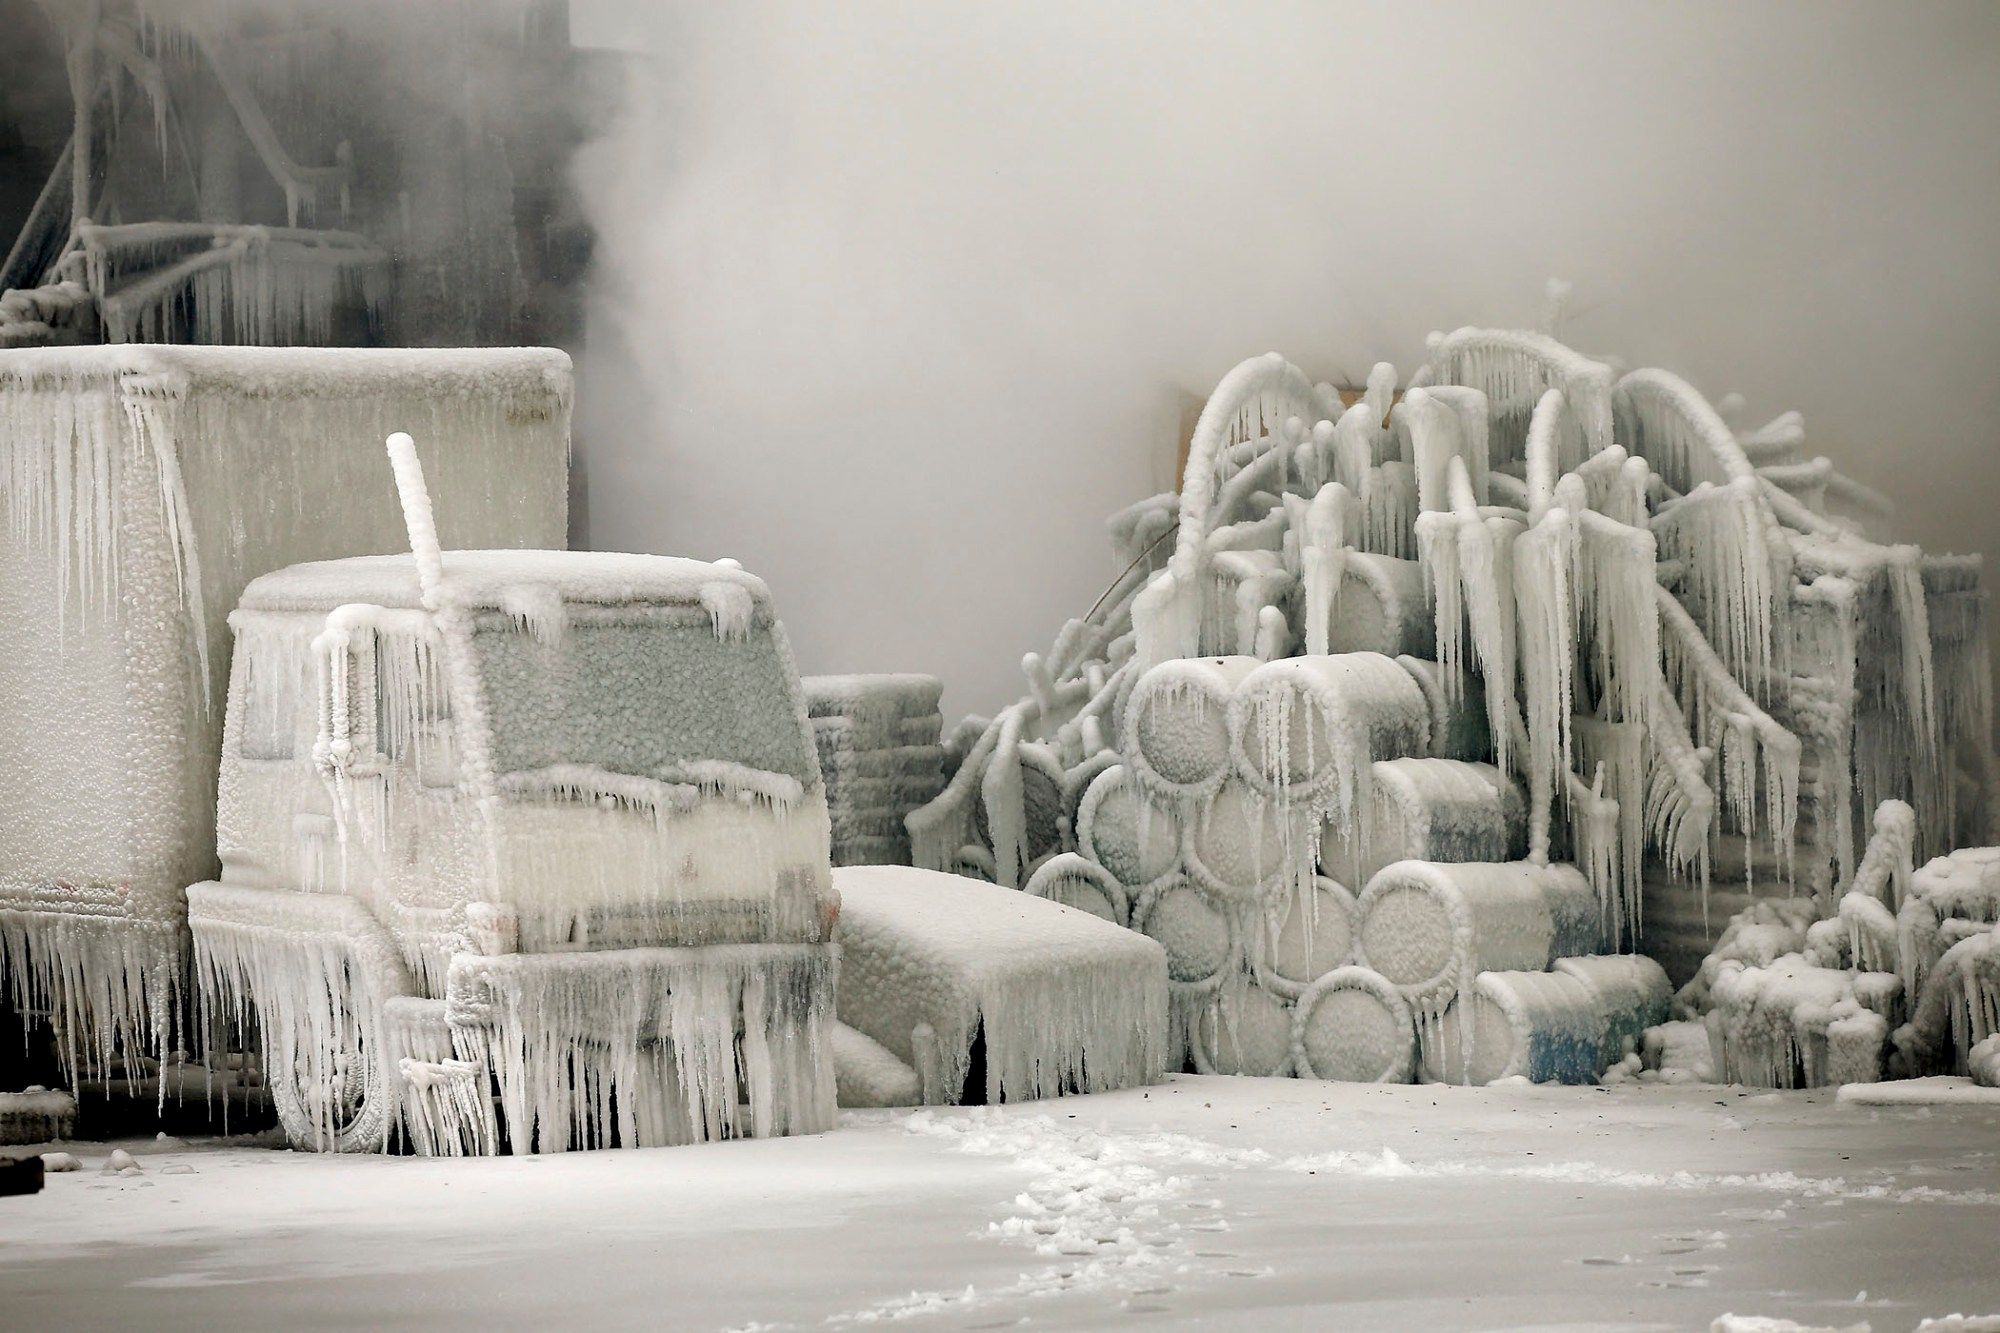 A truck is covered in ice as firefighters help to extinguish a massive blaze at a vacant warehouse on January 23, 2013 in Chicago. More than 200 firefighters battled a five-alarm fire as temperatures were in the single digits.